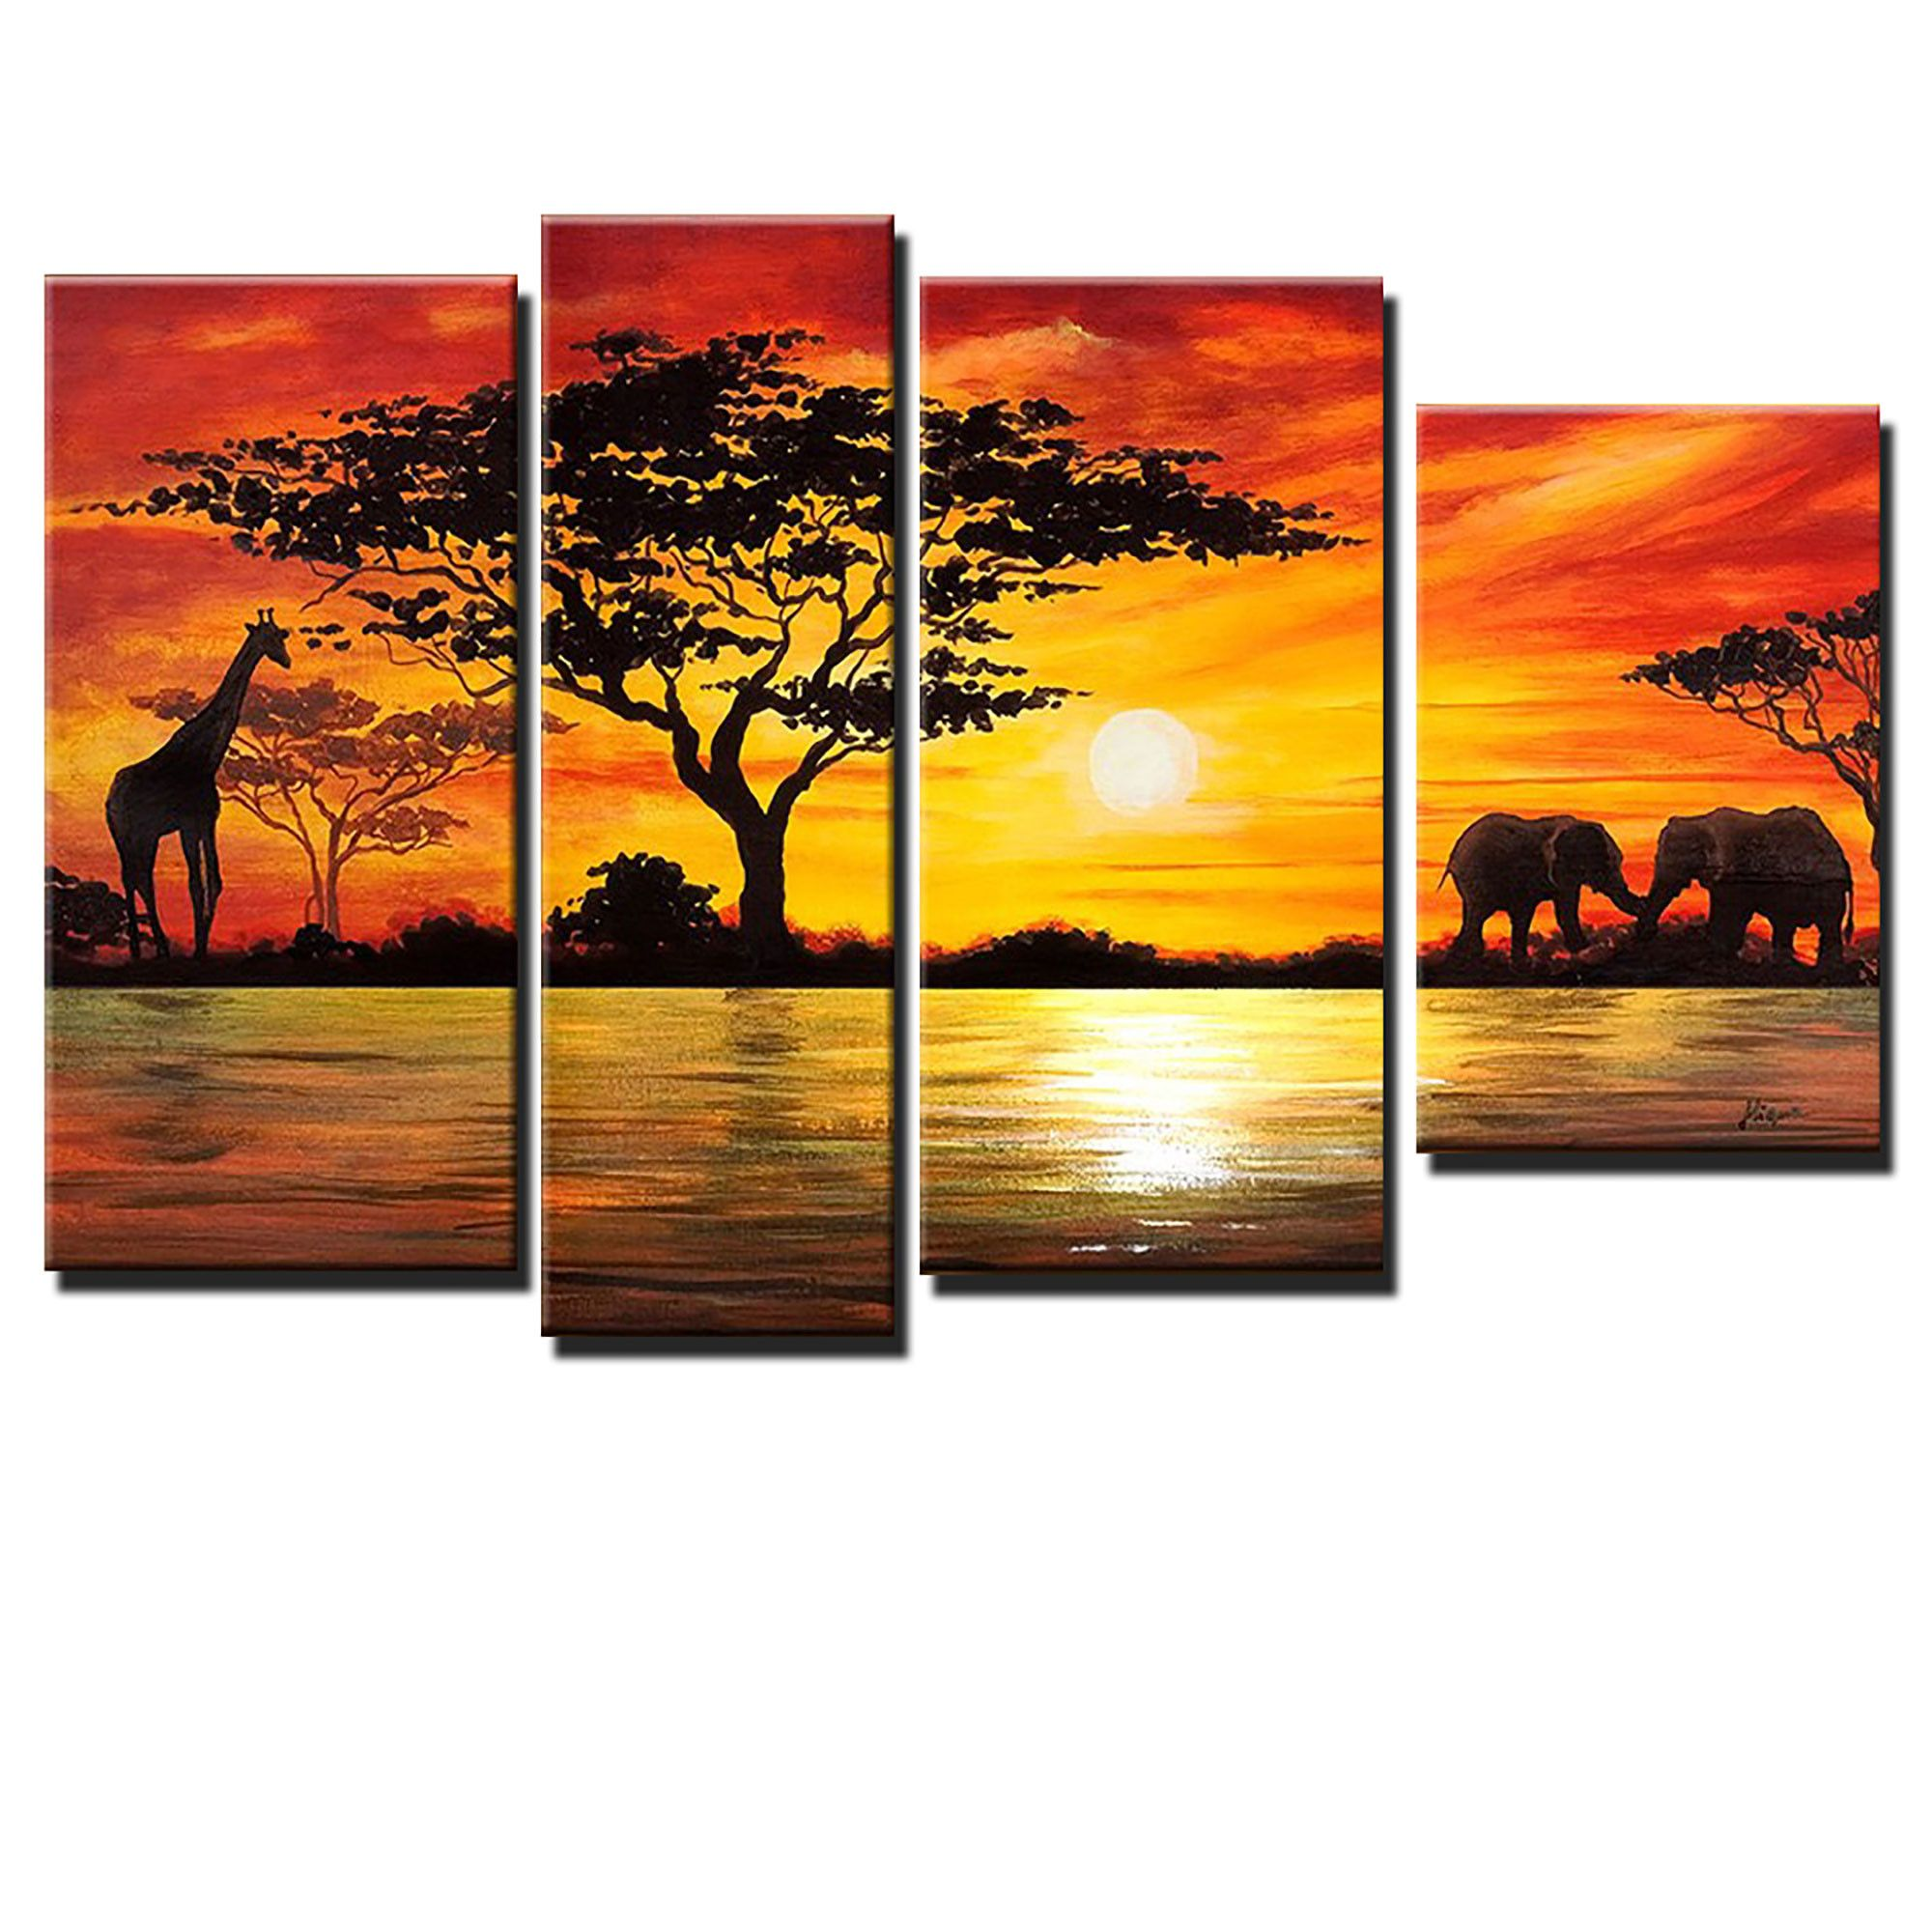 Beauty of Africa Canvas Wall Art Landscape Oil Painting | Jardinería ...